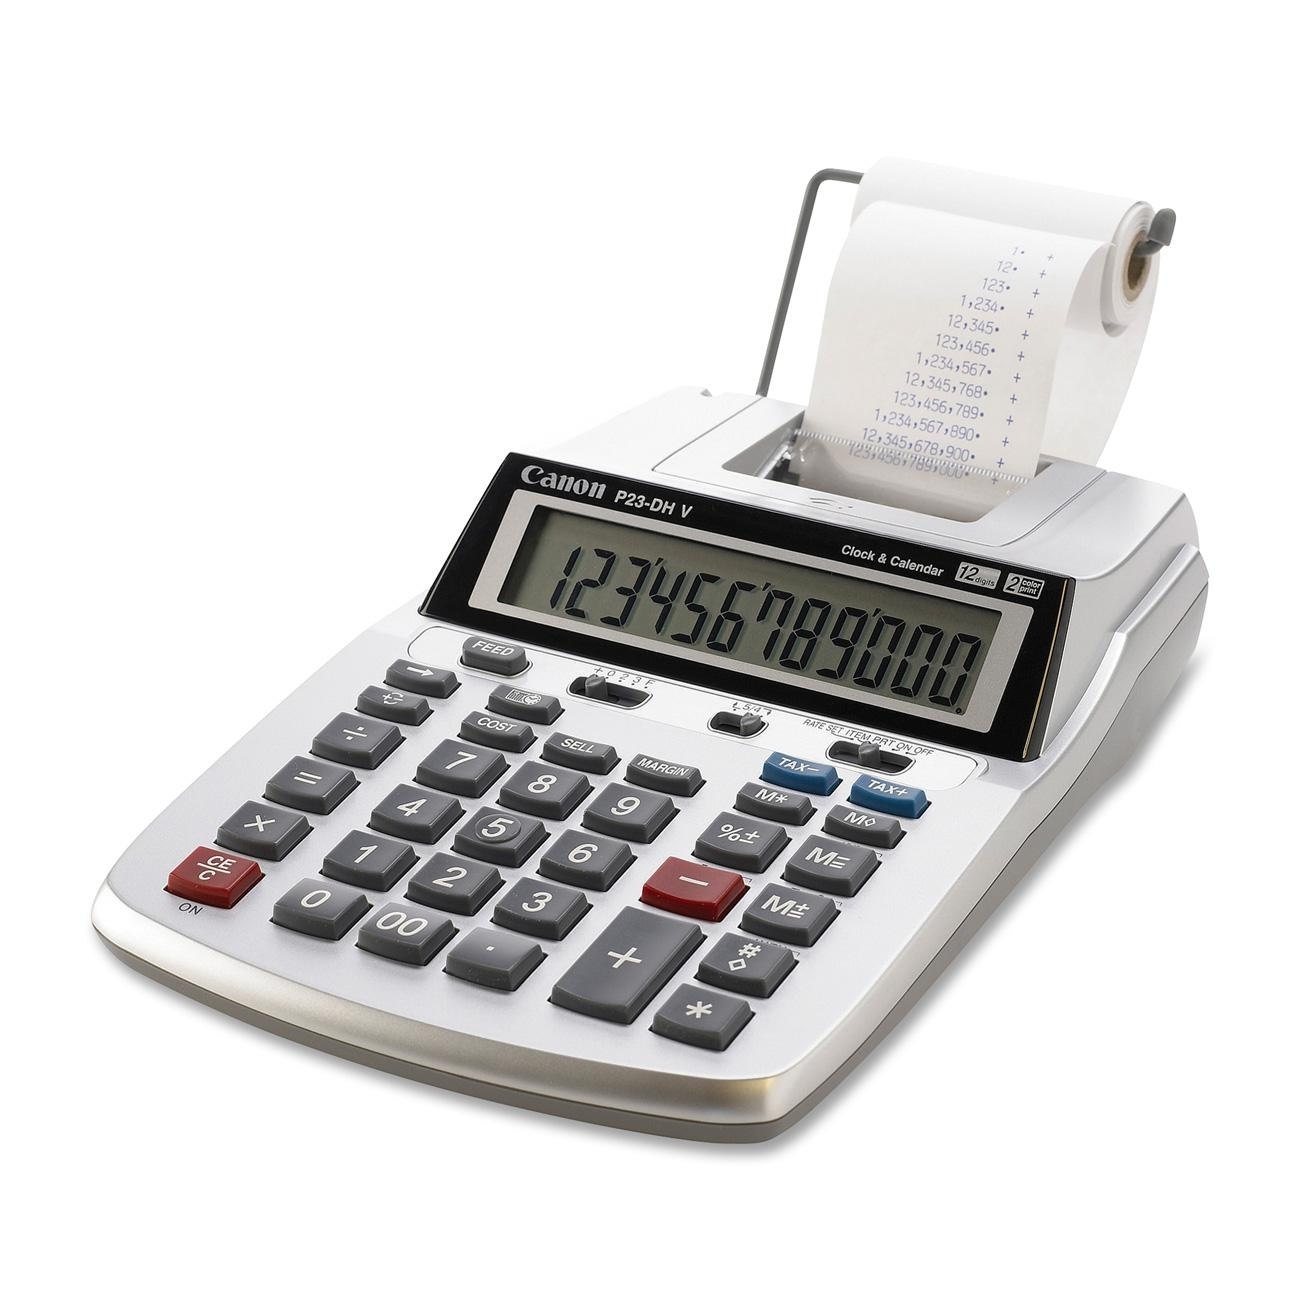 Canon P23-DHV 12-Digit Printing Calculator, Purple Red Print, 2.3 Lines Sec by Overstock